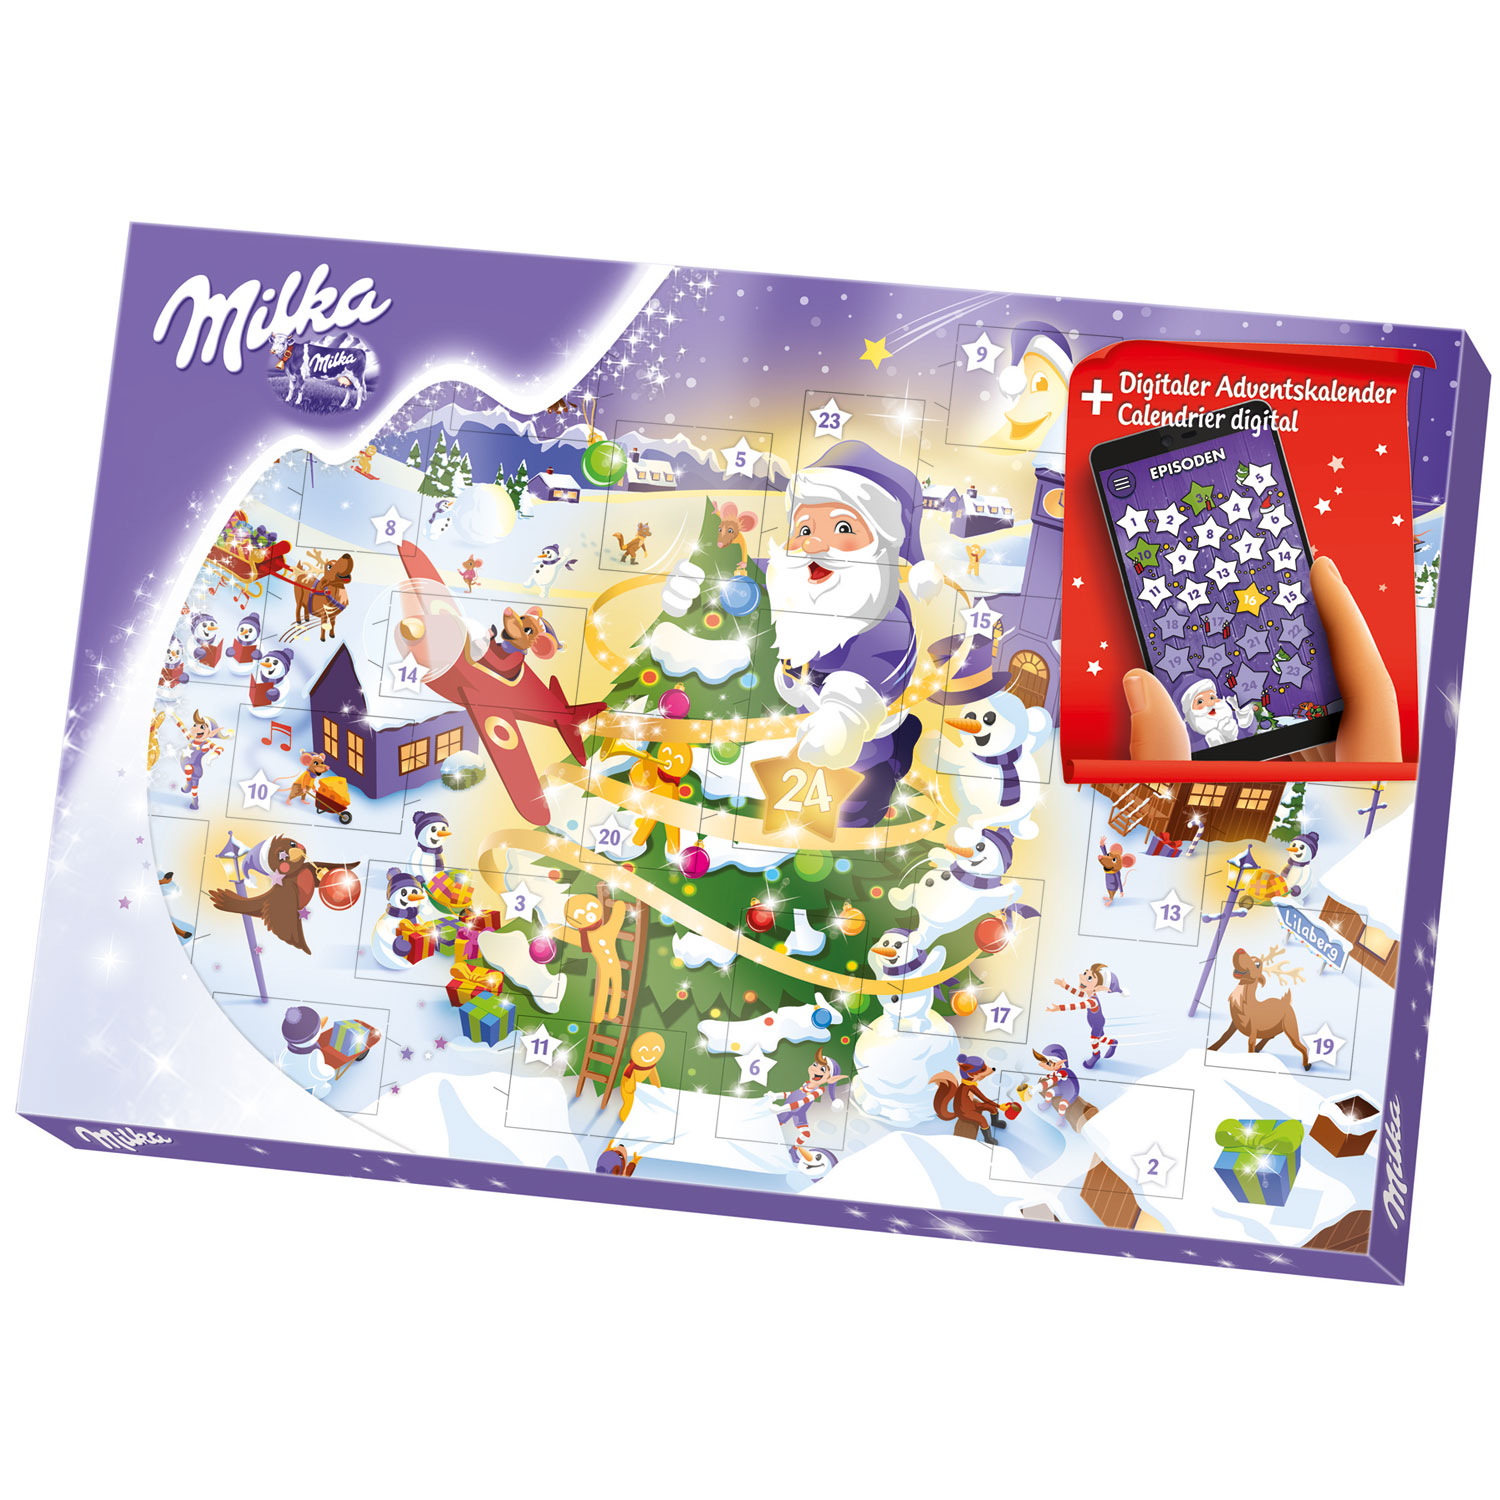 milka digitaler adventskalender online kaufen im world of sweets shop. Black Bedroom Furniture Sets. Home Design Ideas